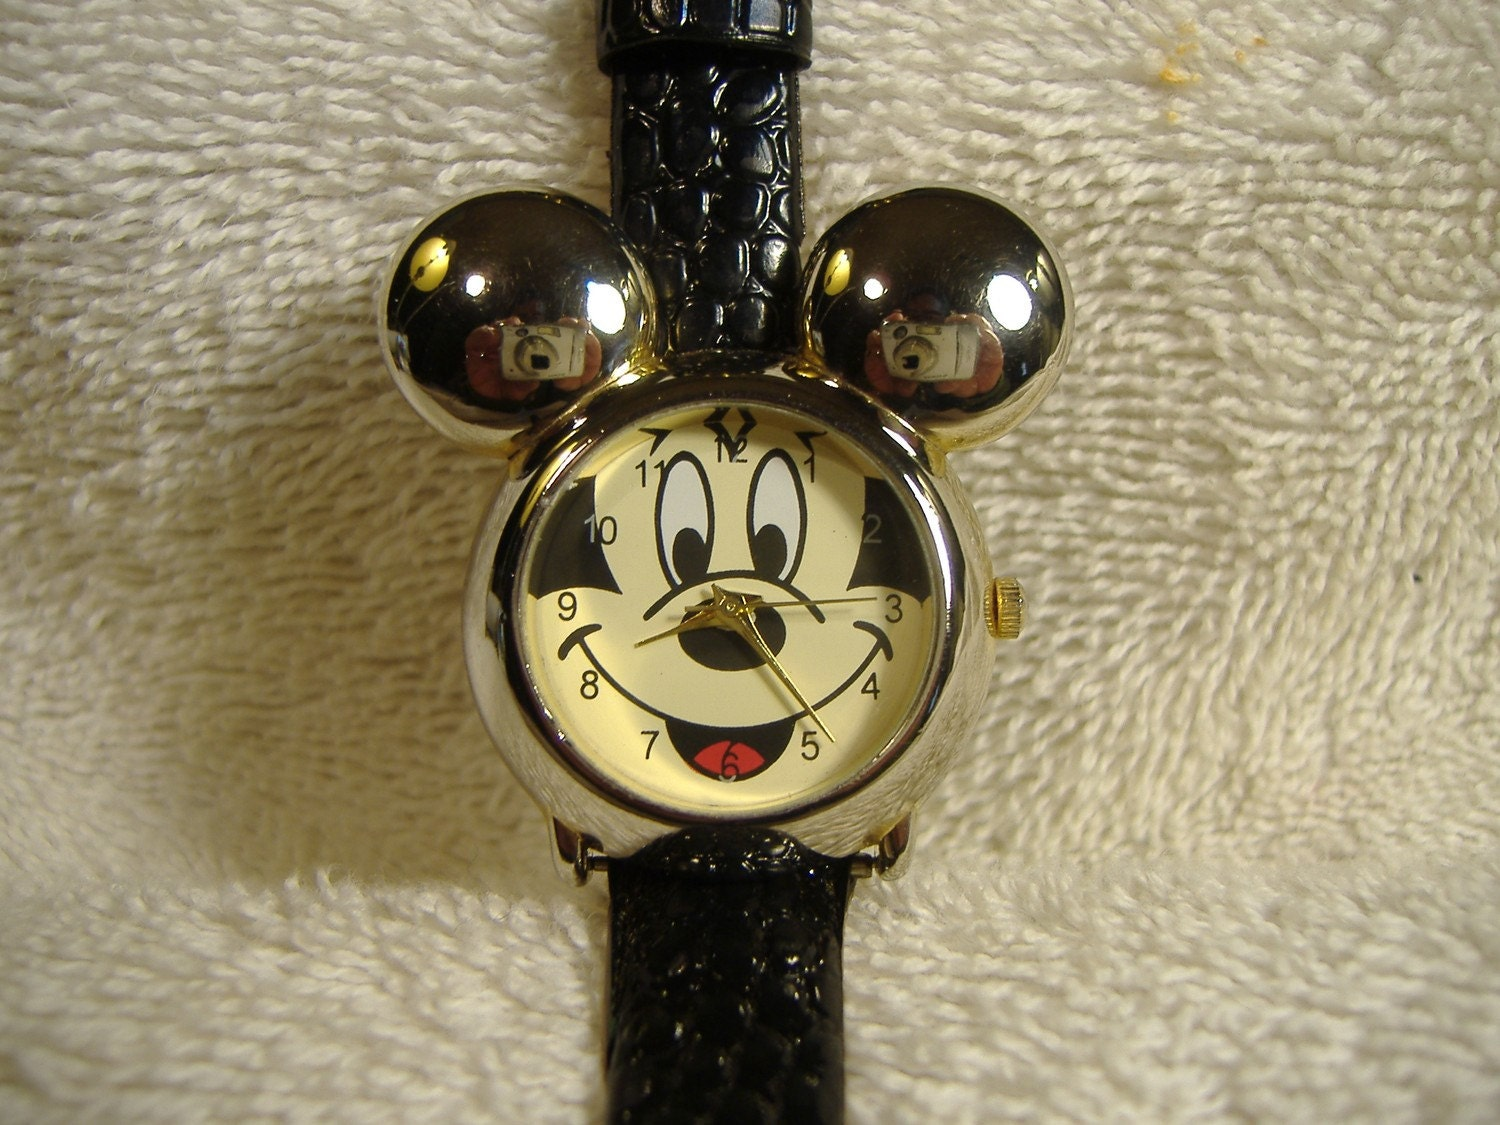 Vintage Mickey Mouse Collectibles - Bessed: Human-Guided Search